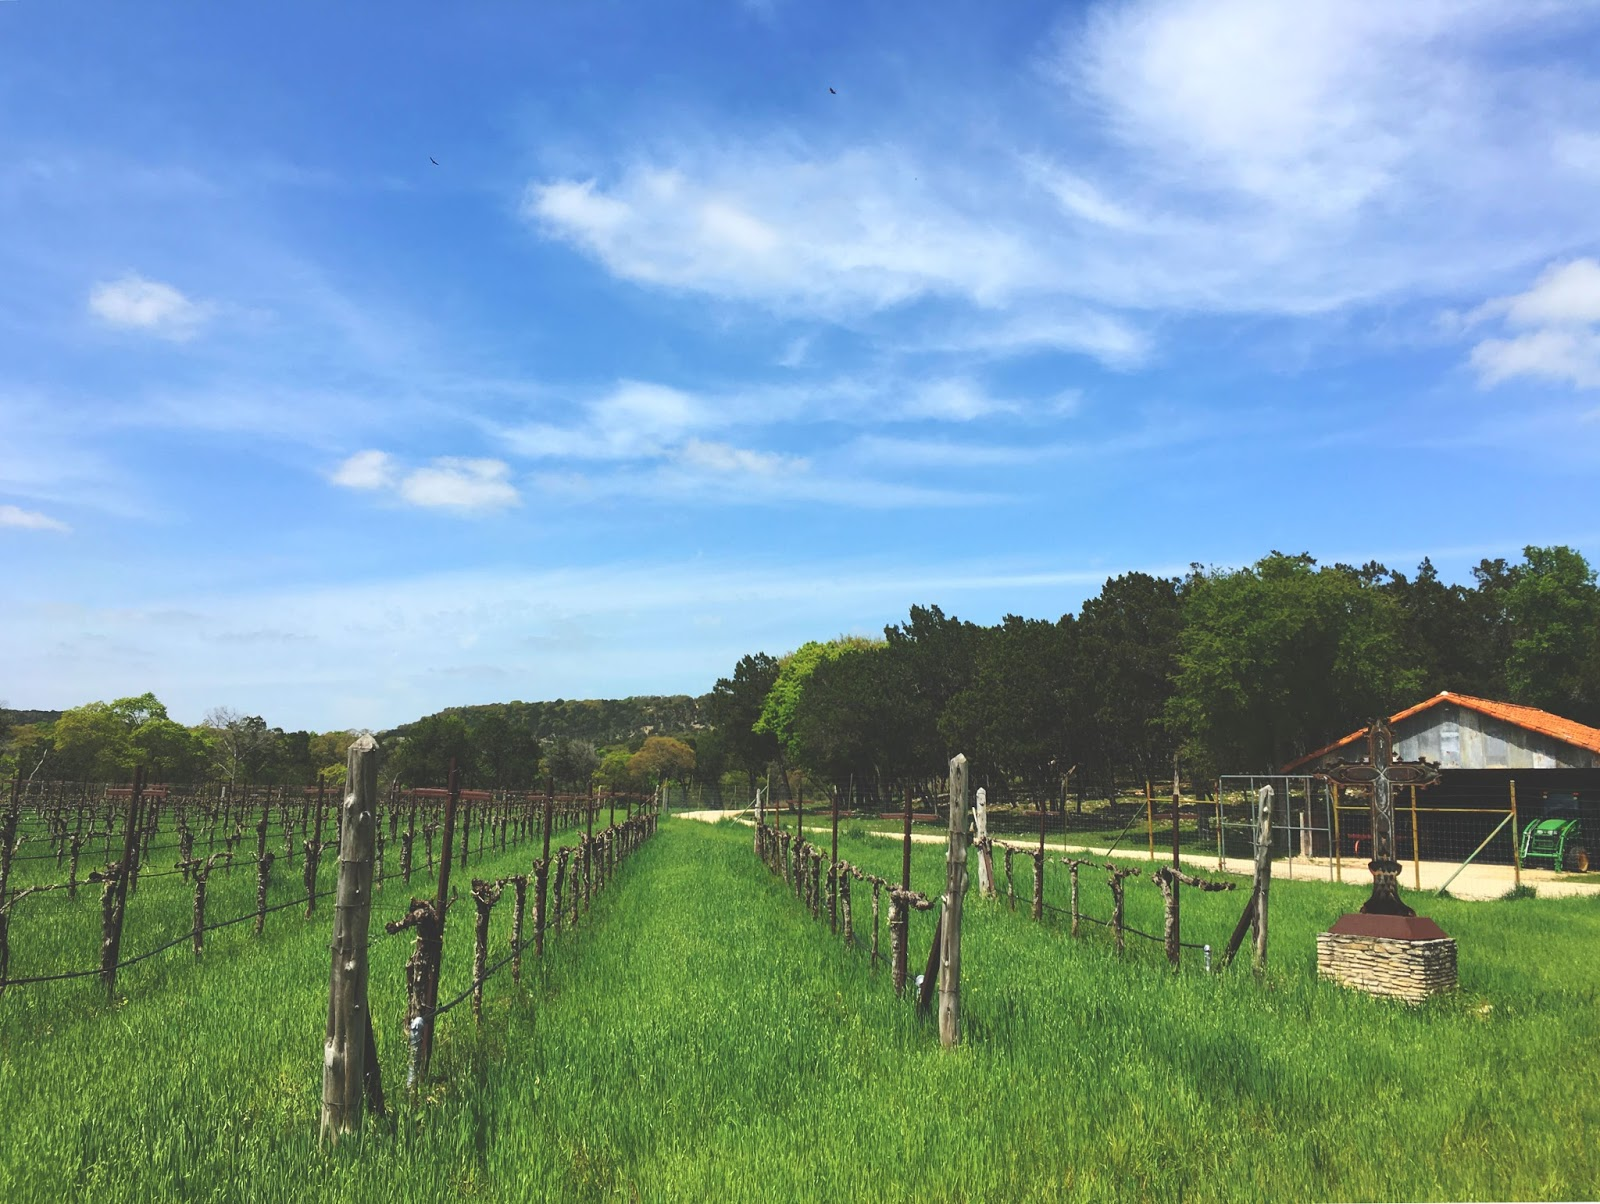 La Cruz de Comal - a winery near San Antonio, Texas